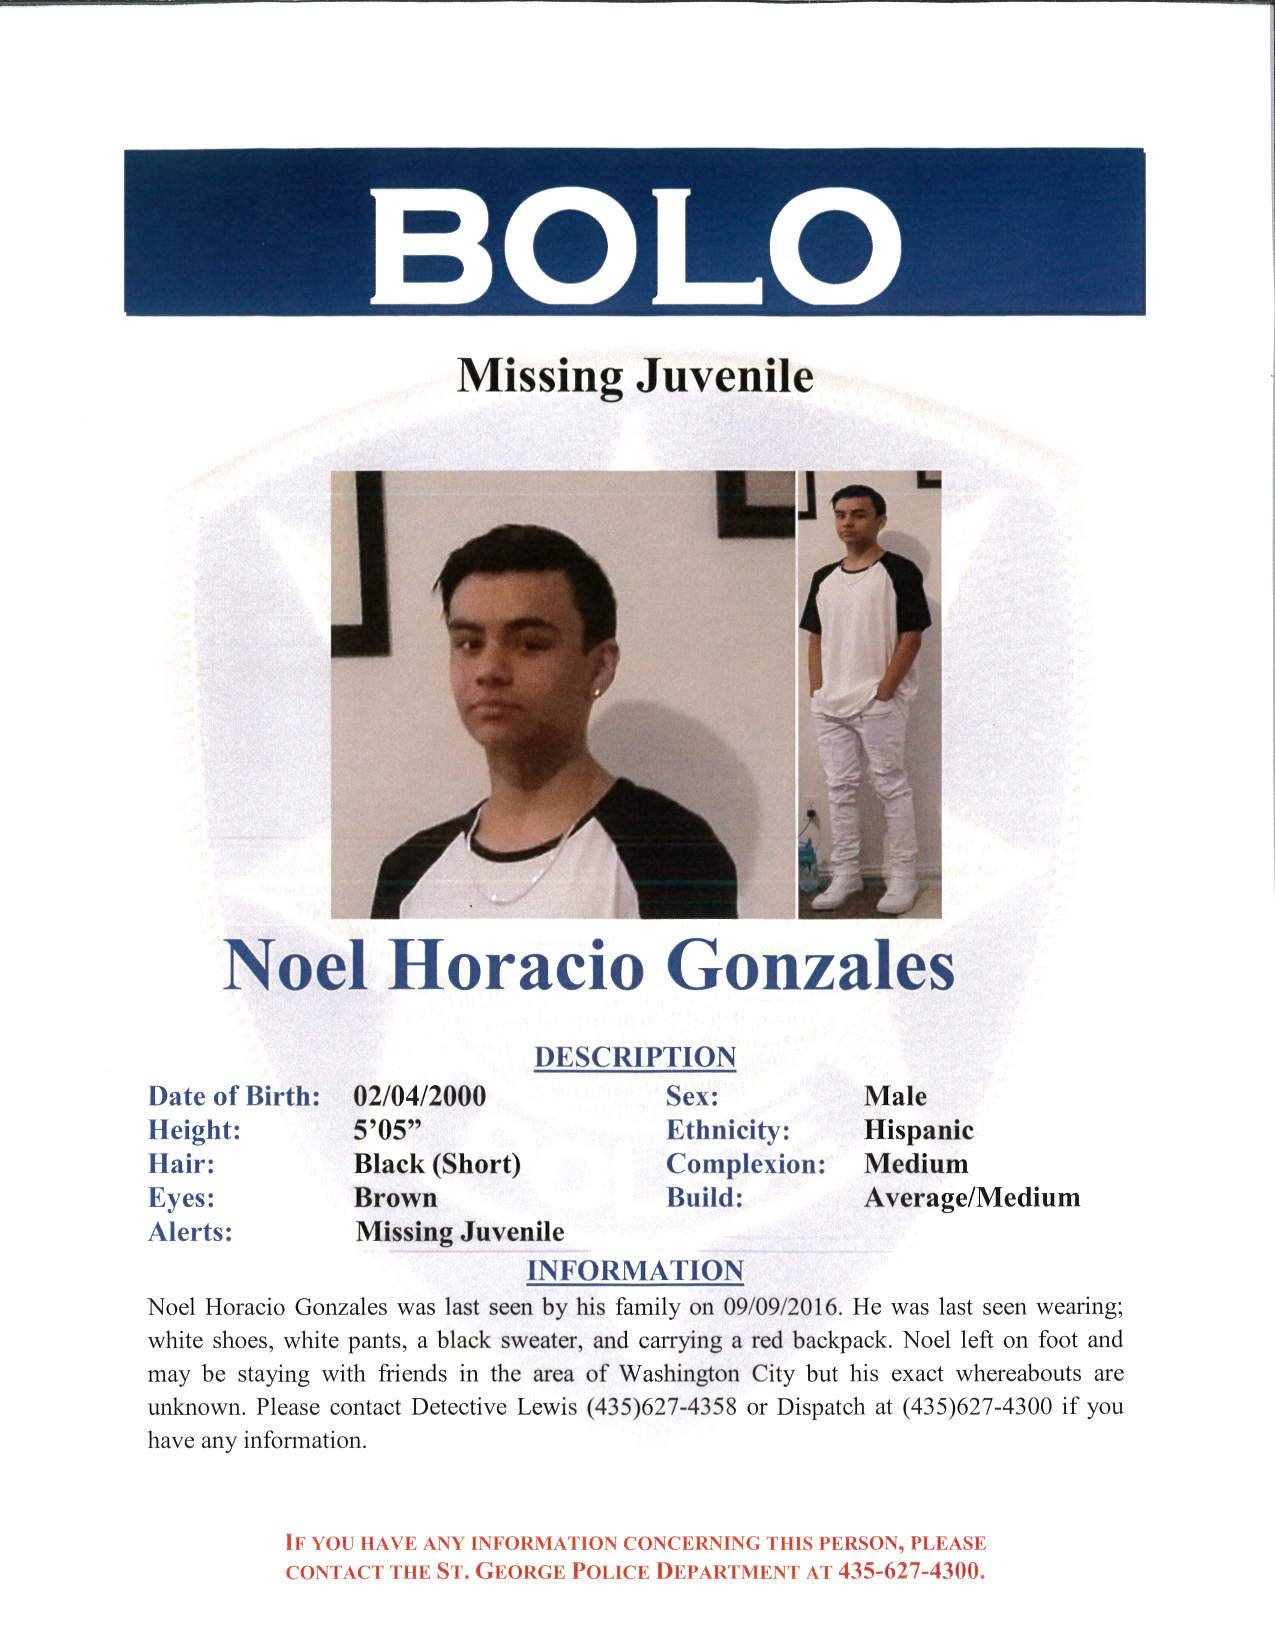 Missing person alert issued by the St. George Police Department looking for 16-year-old Noel Horacio Gonzales, St. George, Utah, Sept. 19, 2016 | Image courtesy of the St. George Police Department, St. George News